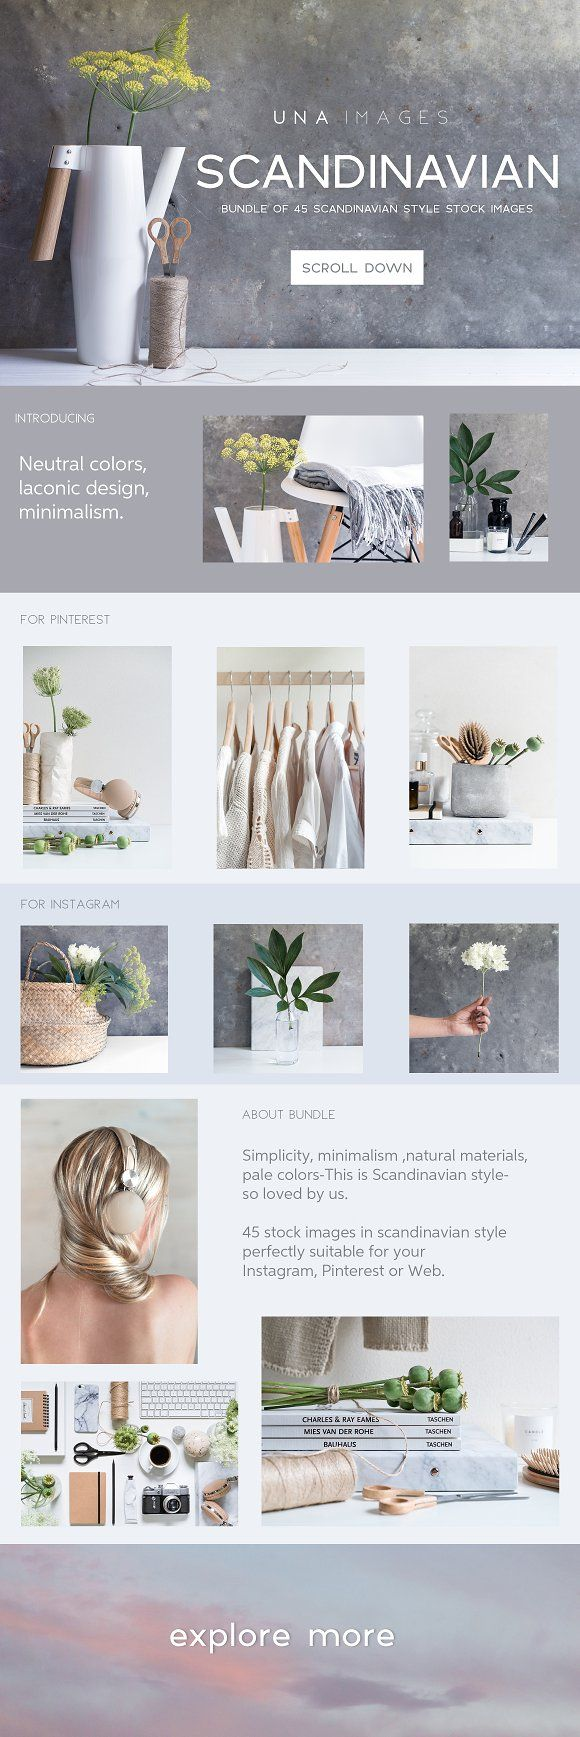 Instagram photo bundle for bloggers and business owners. Feminine styled stock photo bundle to use on your website, blog, product listing, Instagram, Pinterest, Facebook, and other social media. (affiliate) Get this bundle today!